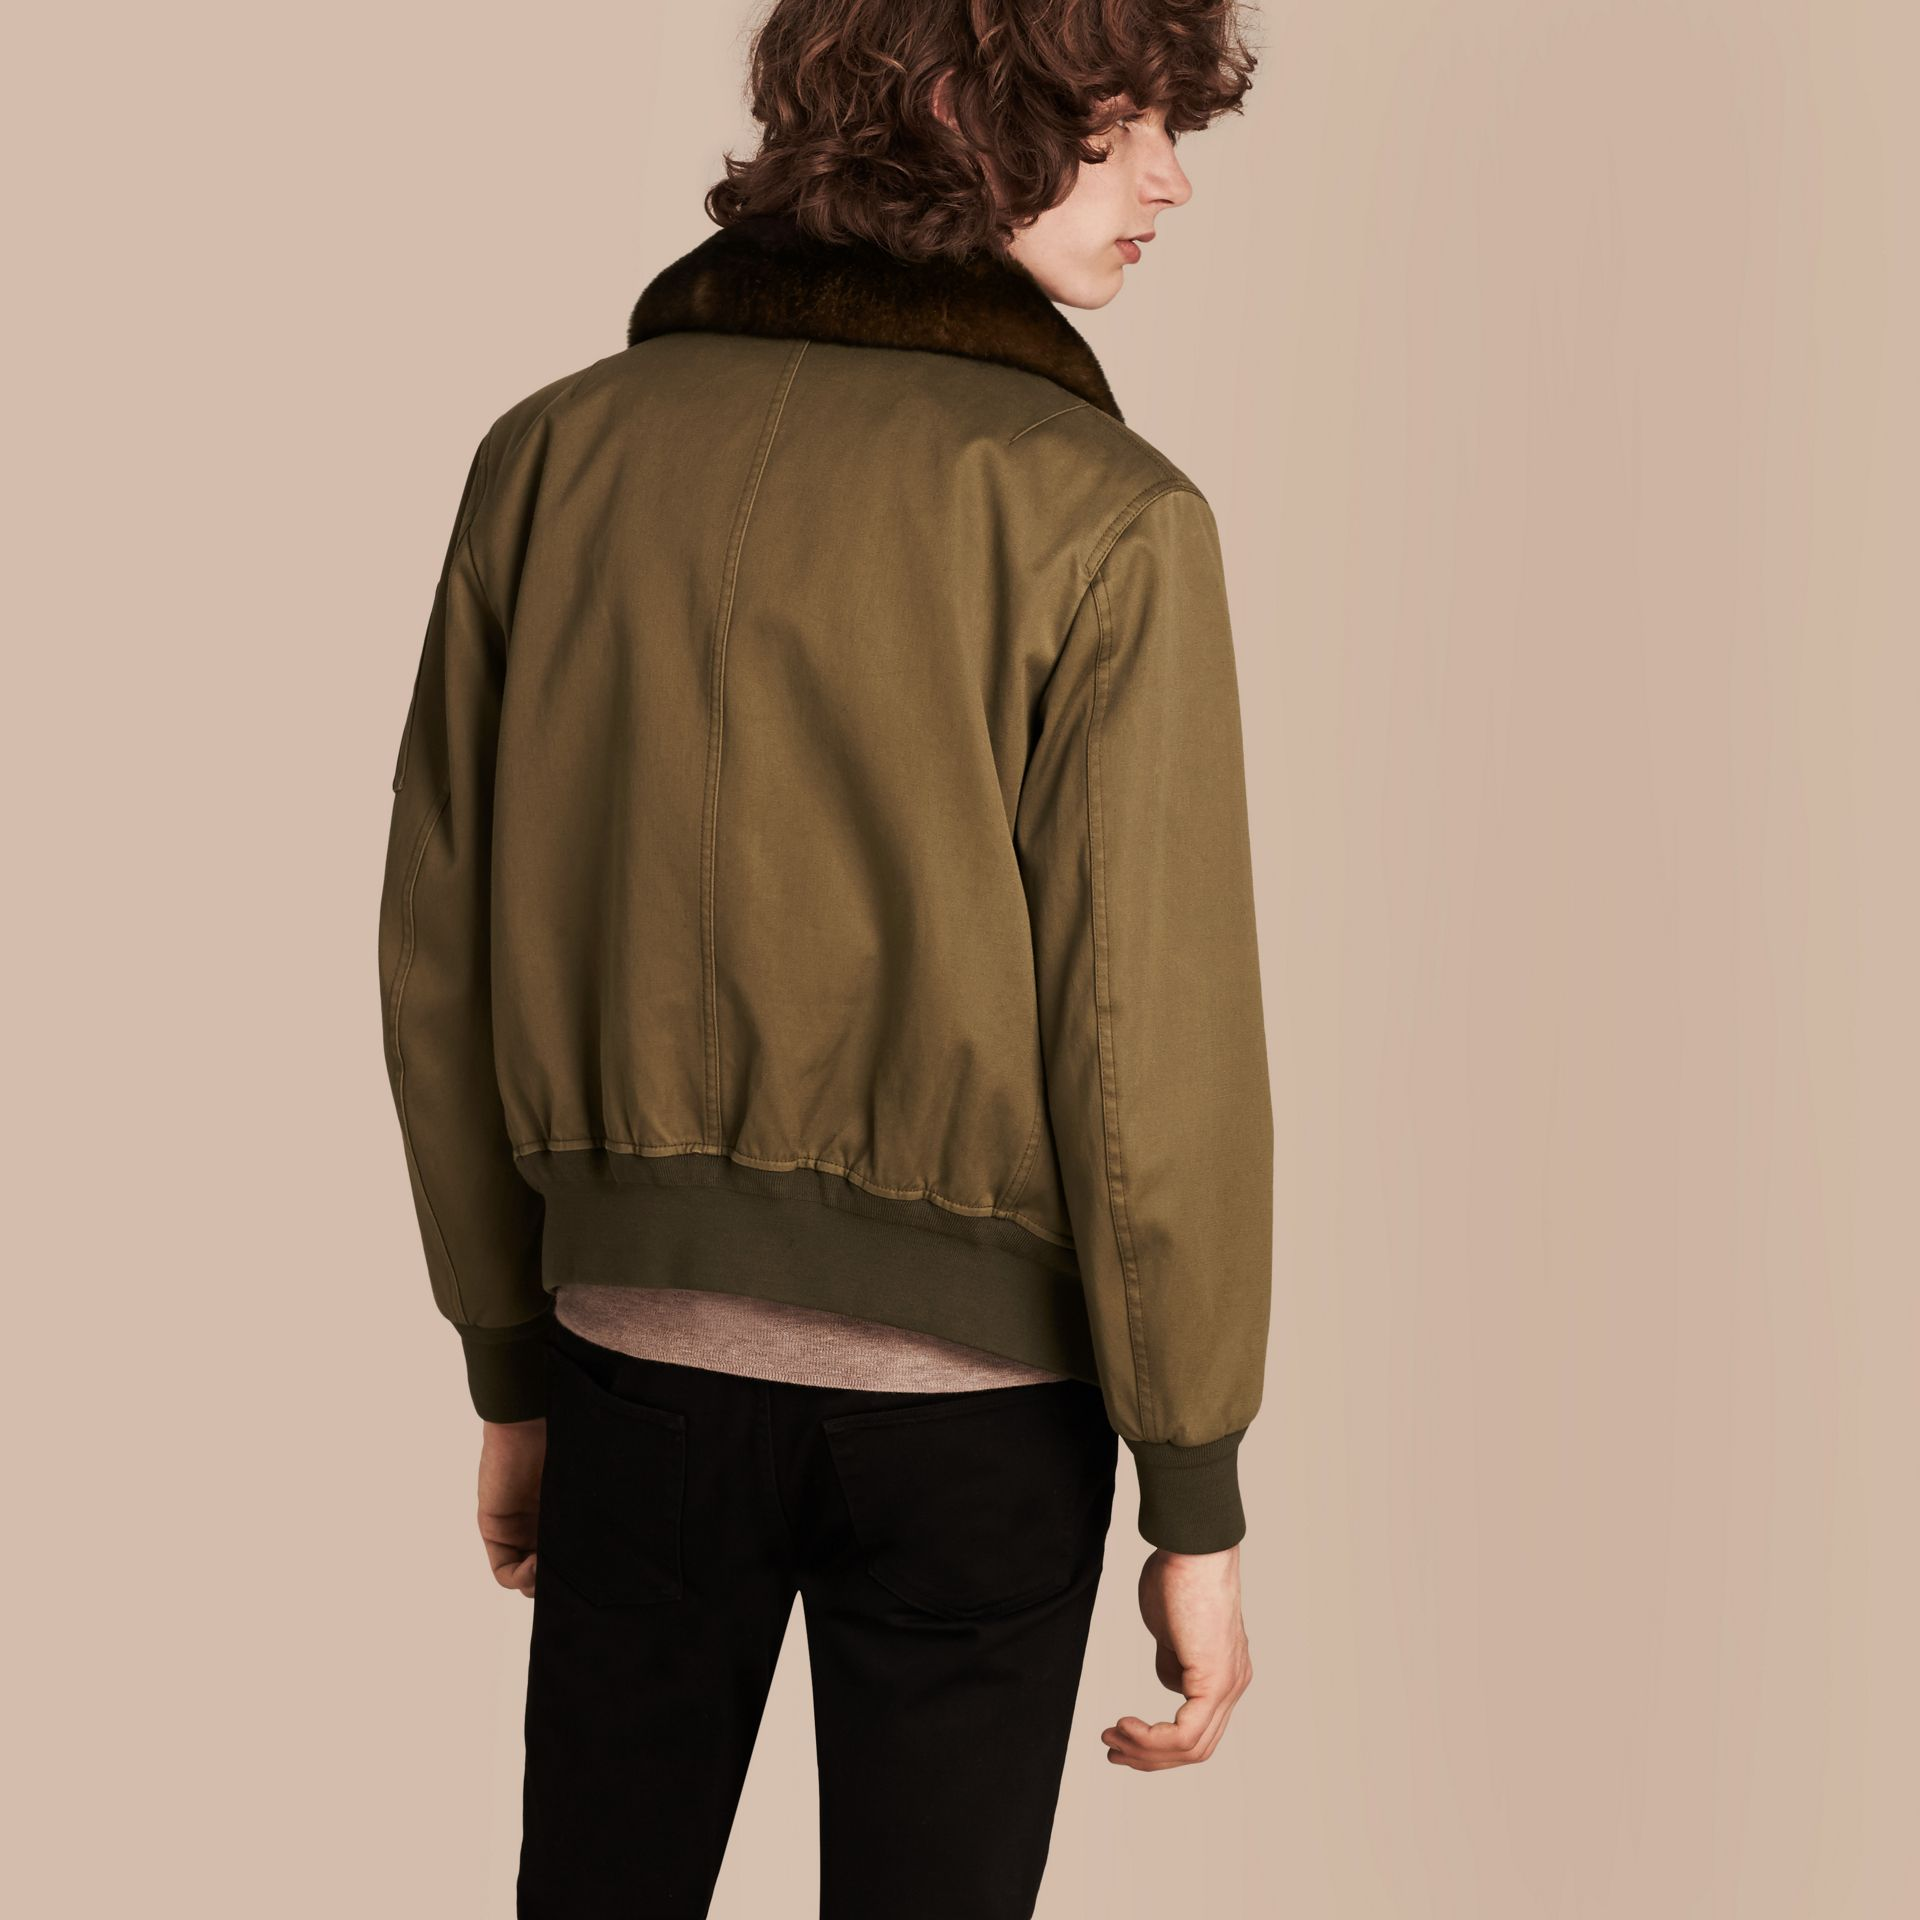 Olive green Cotton Bomber Jacket with Detachable Fur-lined Warmer - gallery image 3